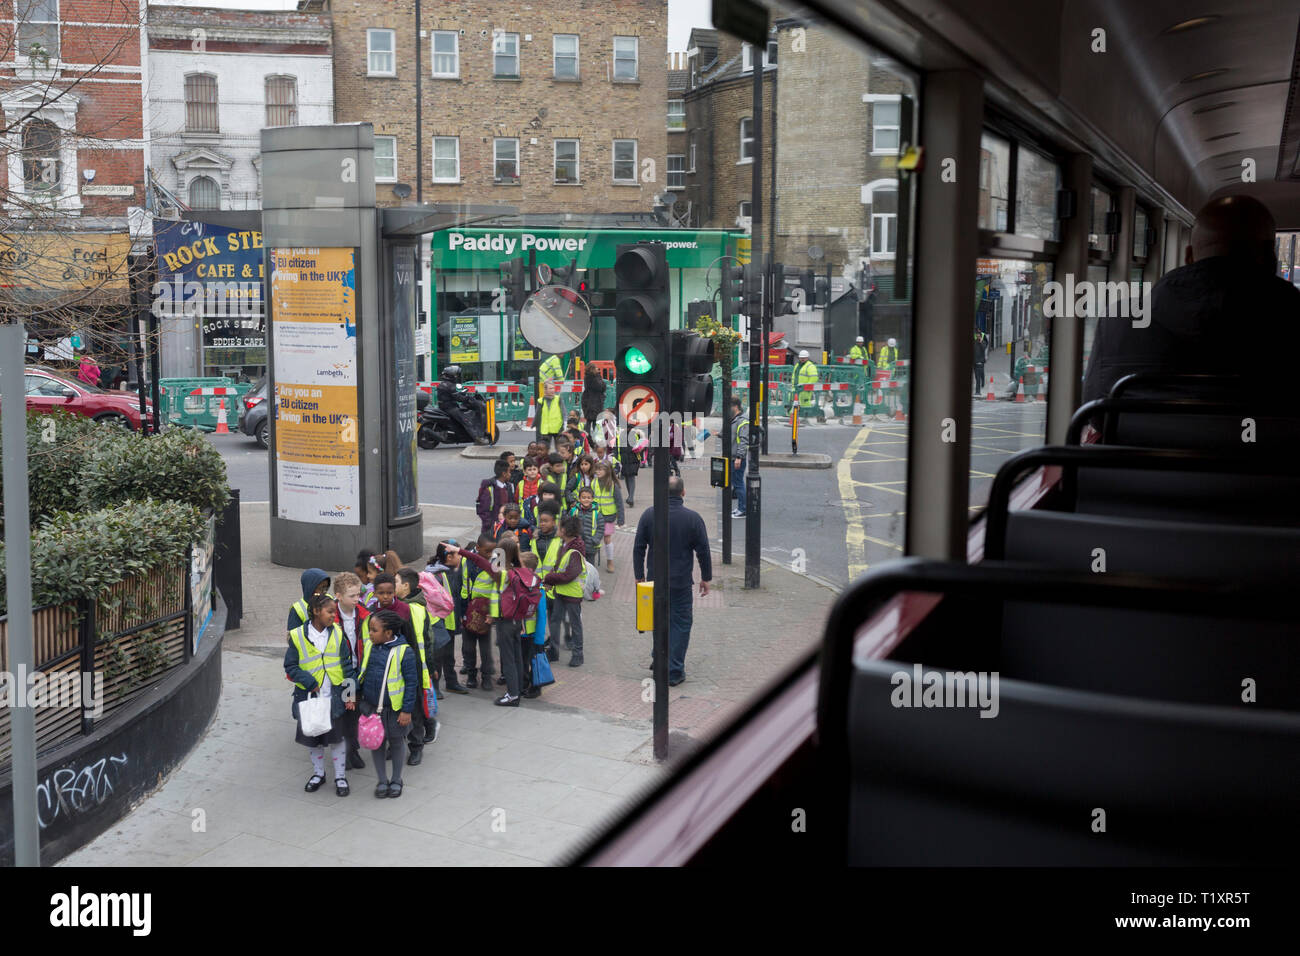 A group of Primary school age cross the road in Camberwell, Southwark, on 27th March 2019, in London, England - Stock Image